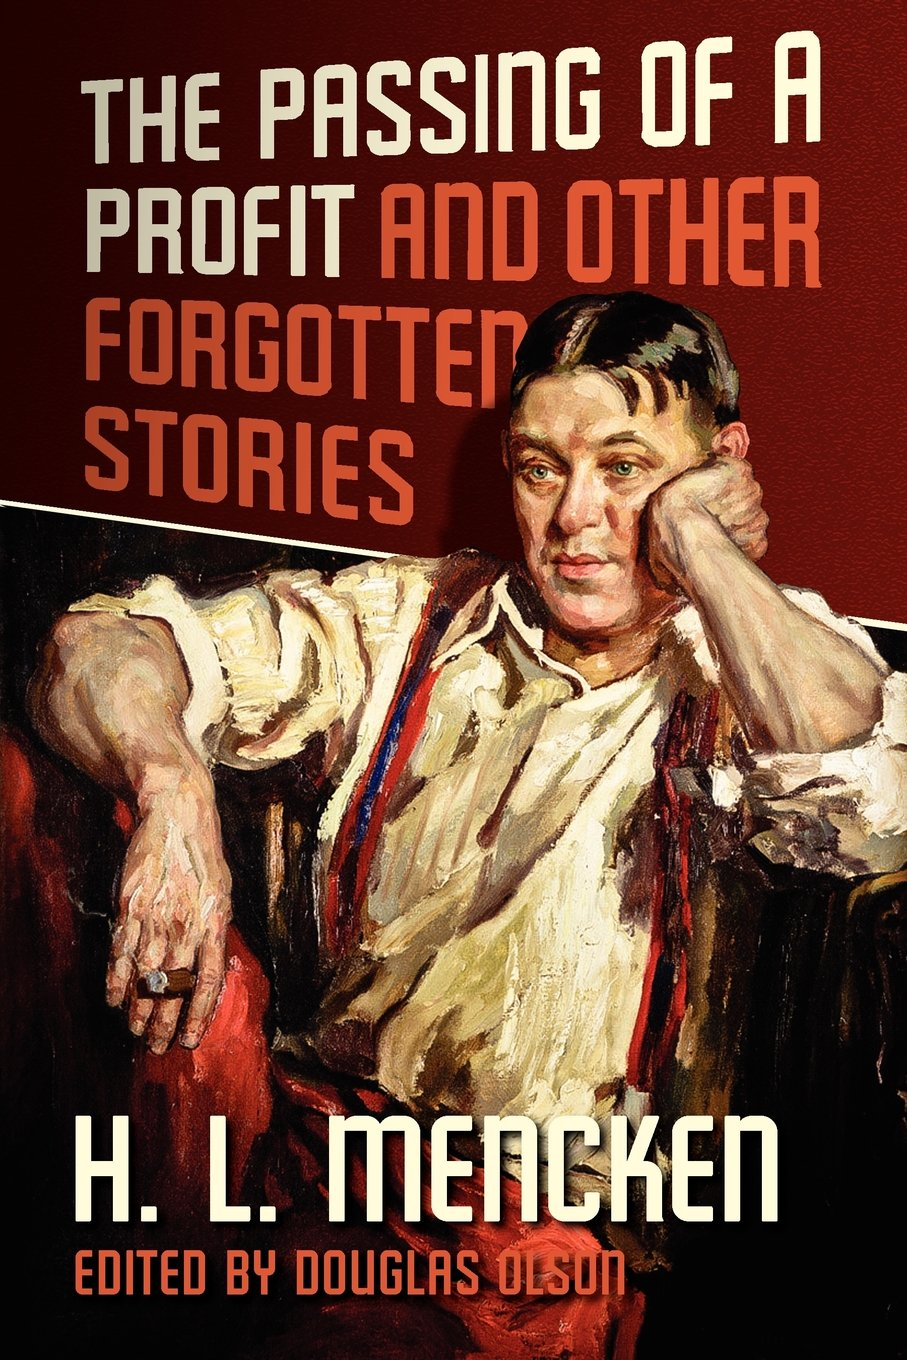 The Passing of a Profit and Other Forgotten Stories